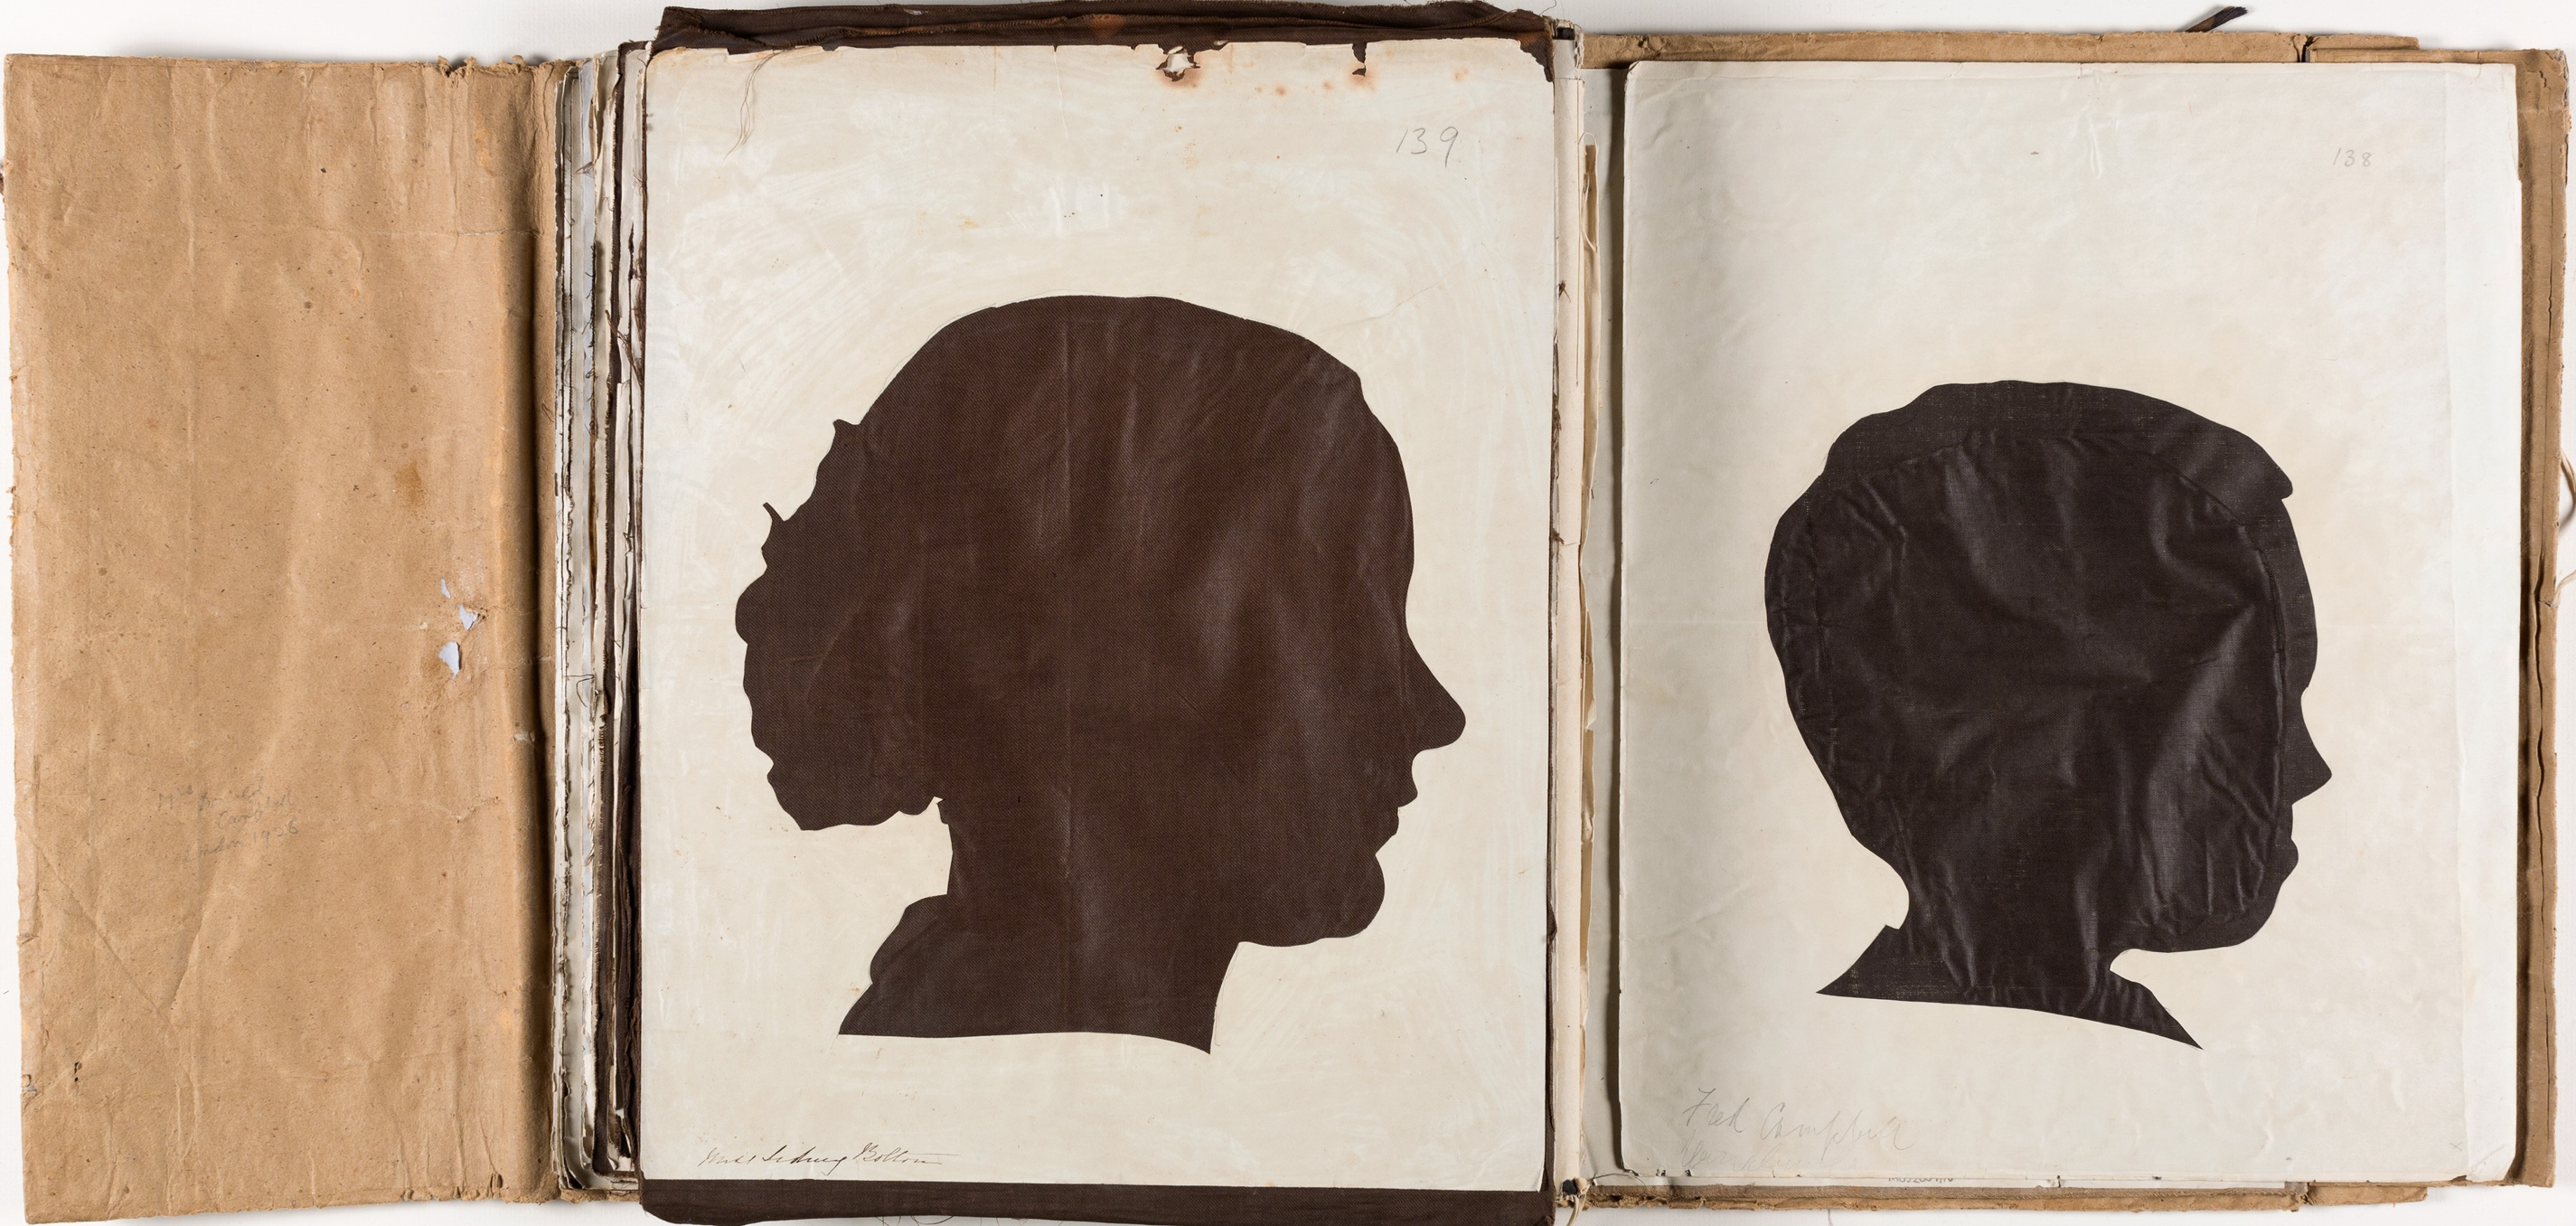 Silhouette likenesses of (left) Miss Sidney Bolton (1834-1924) and (right) Fred Campbell (1846-1928) / by Marianne Collinson Close